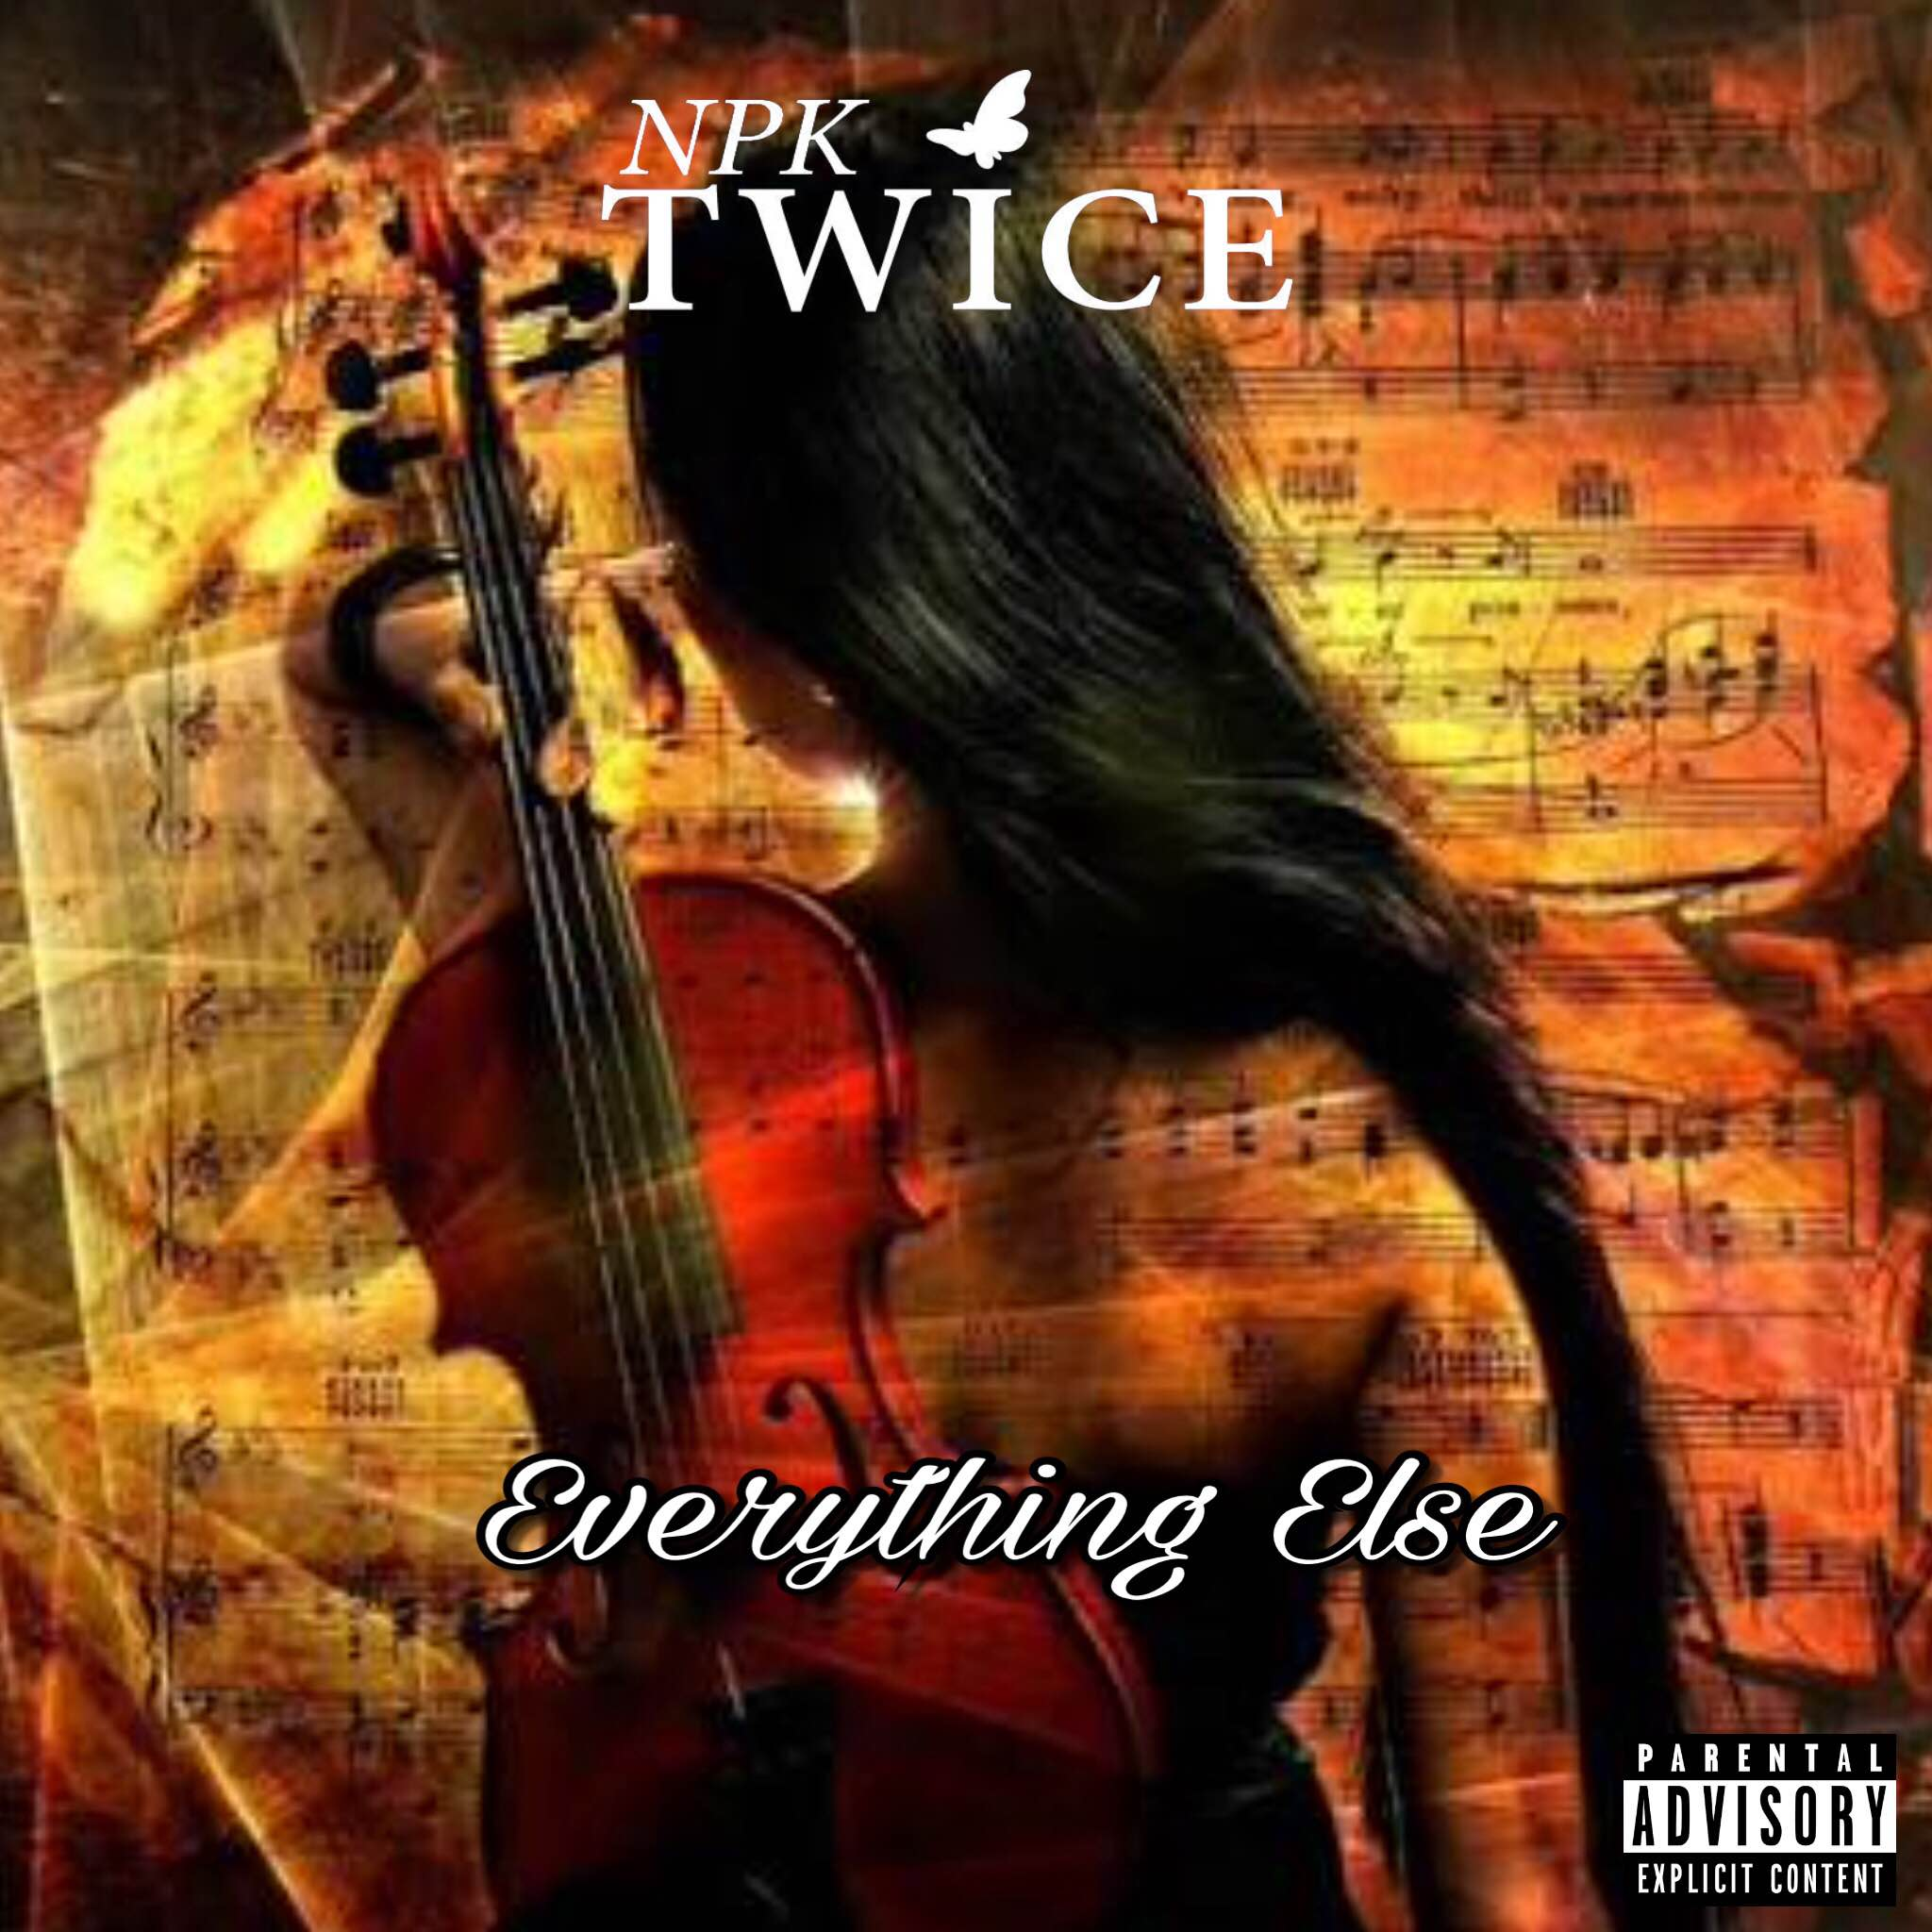 NPK TWICE EVERYTHING ELSE COVER